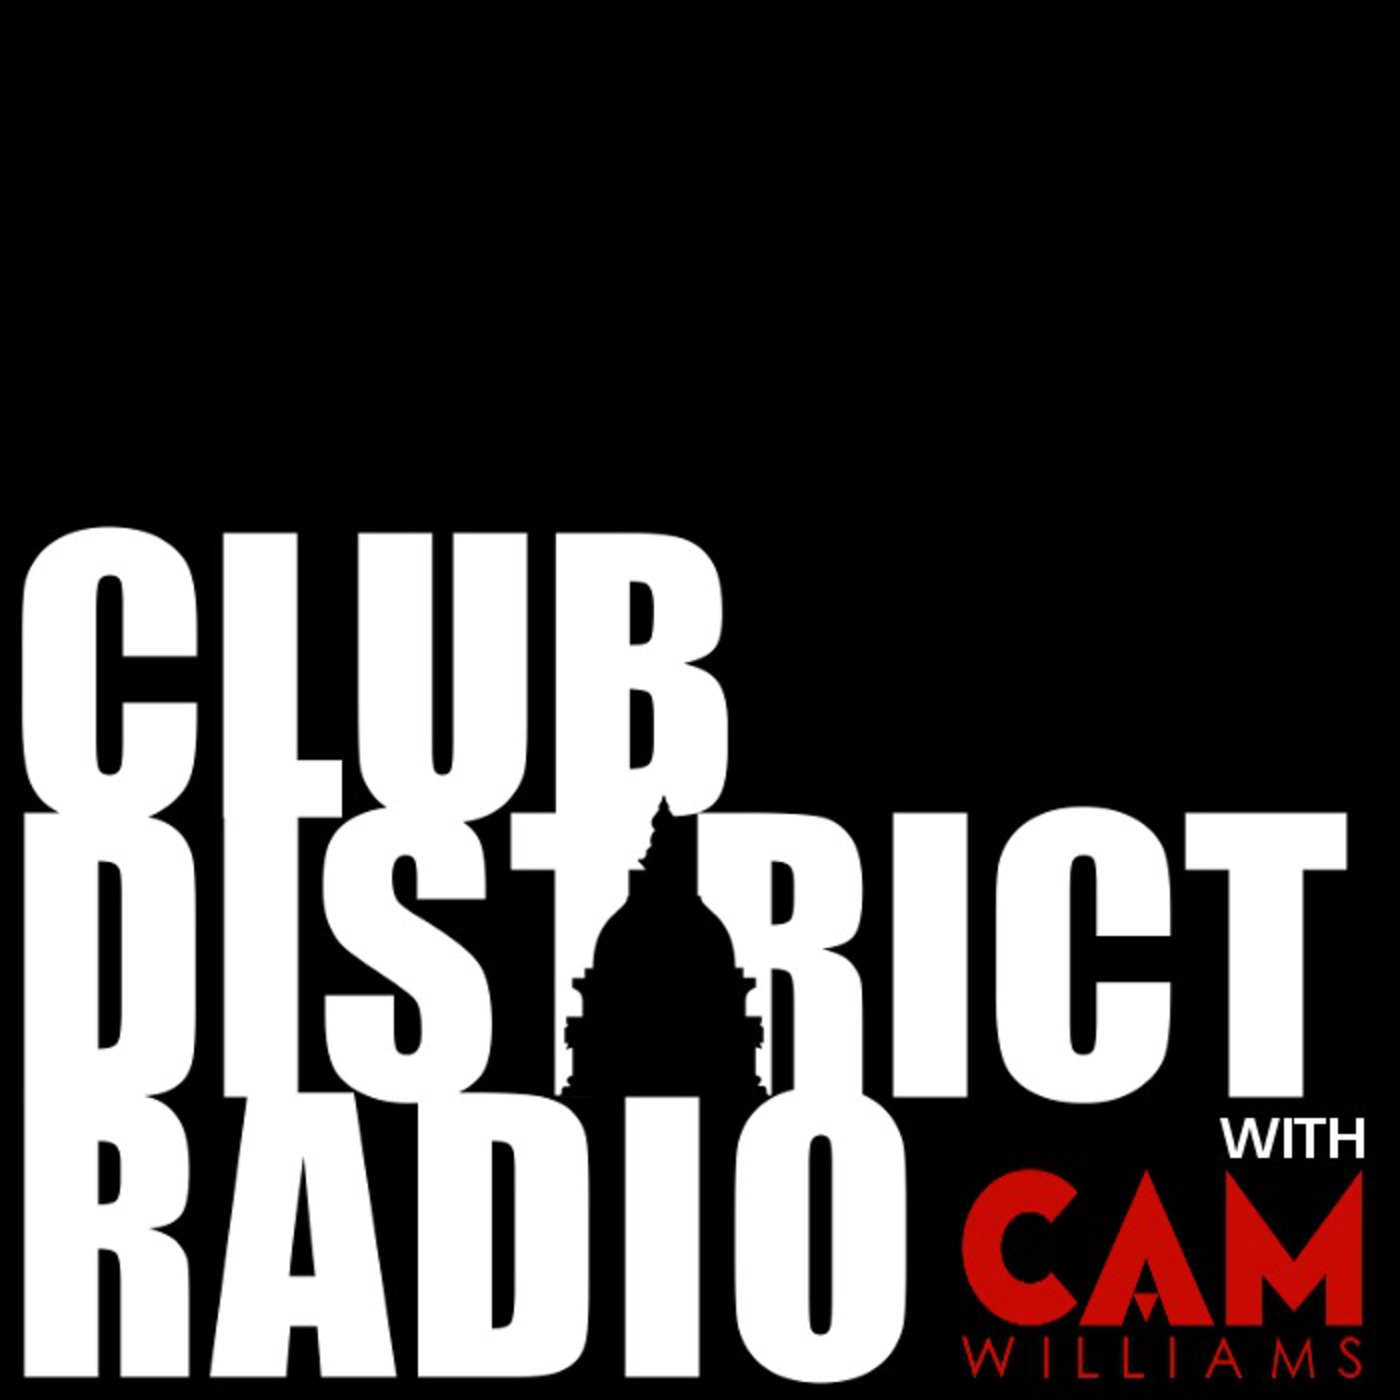 Club District Radio with Cam Williams